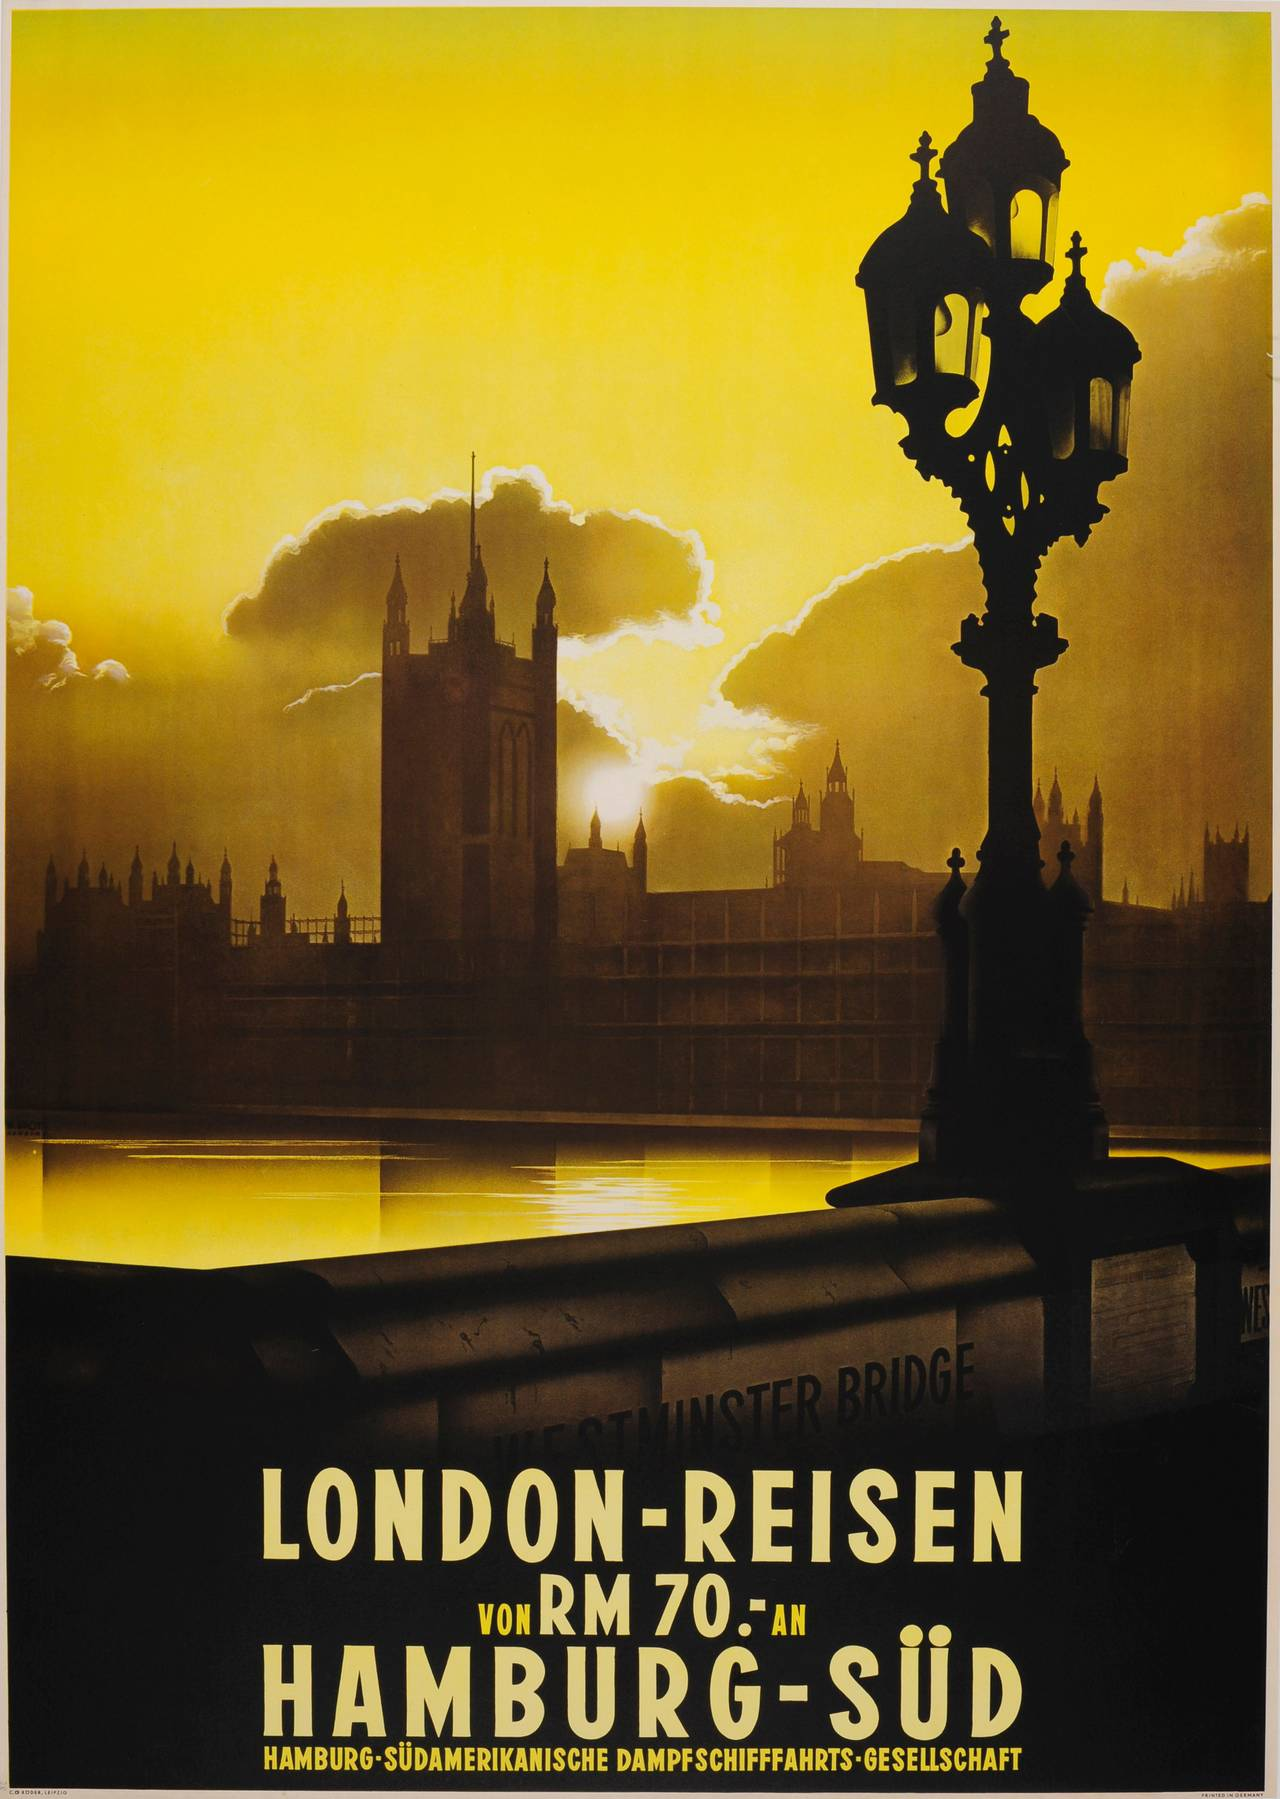 Rare Original 1930s Travel Advertising Poster: Westminster Bridge View, London